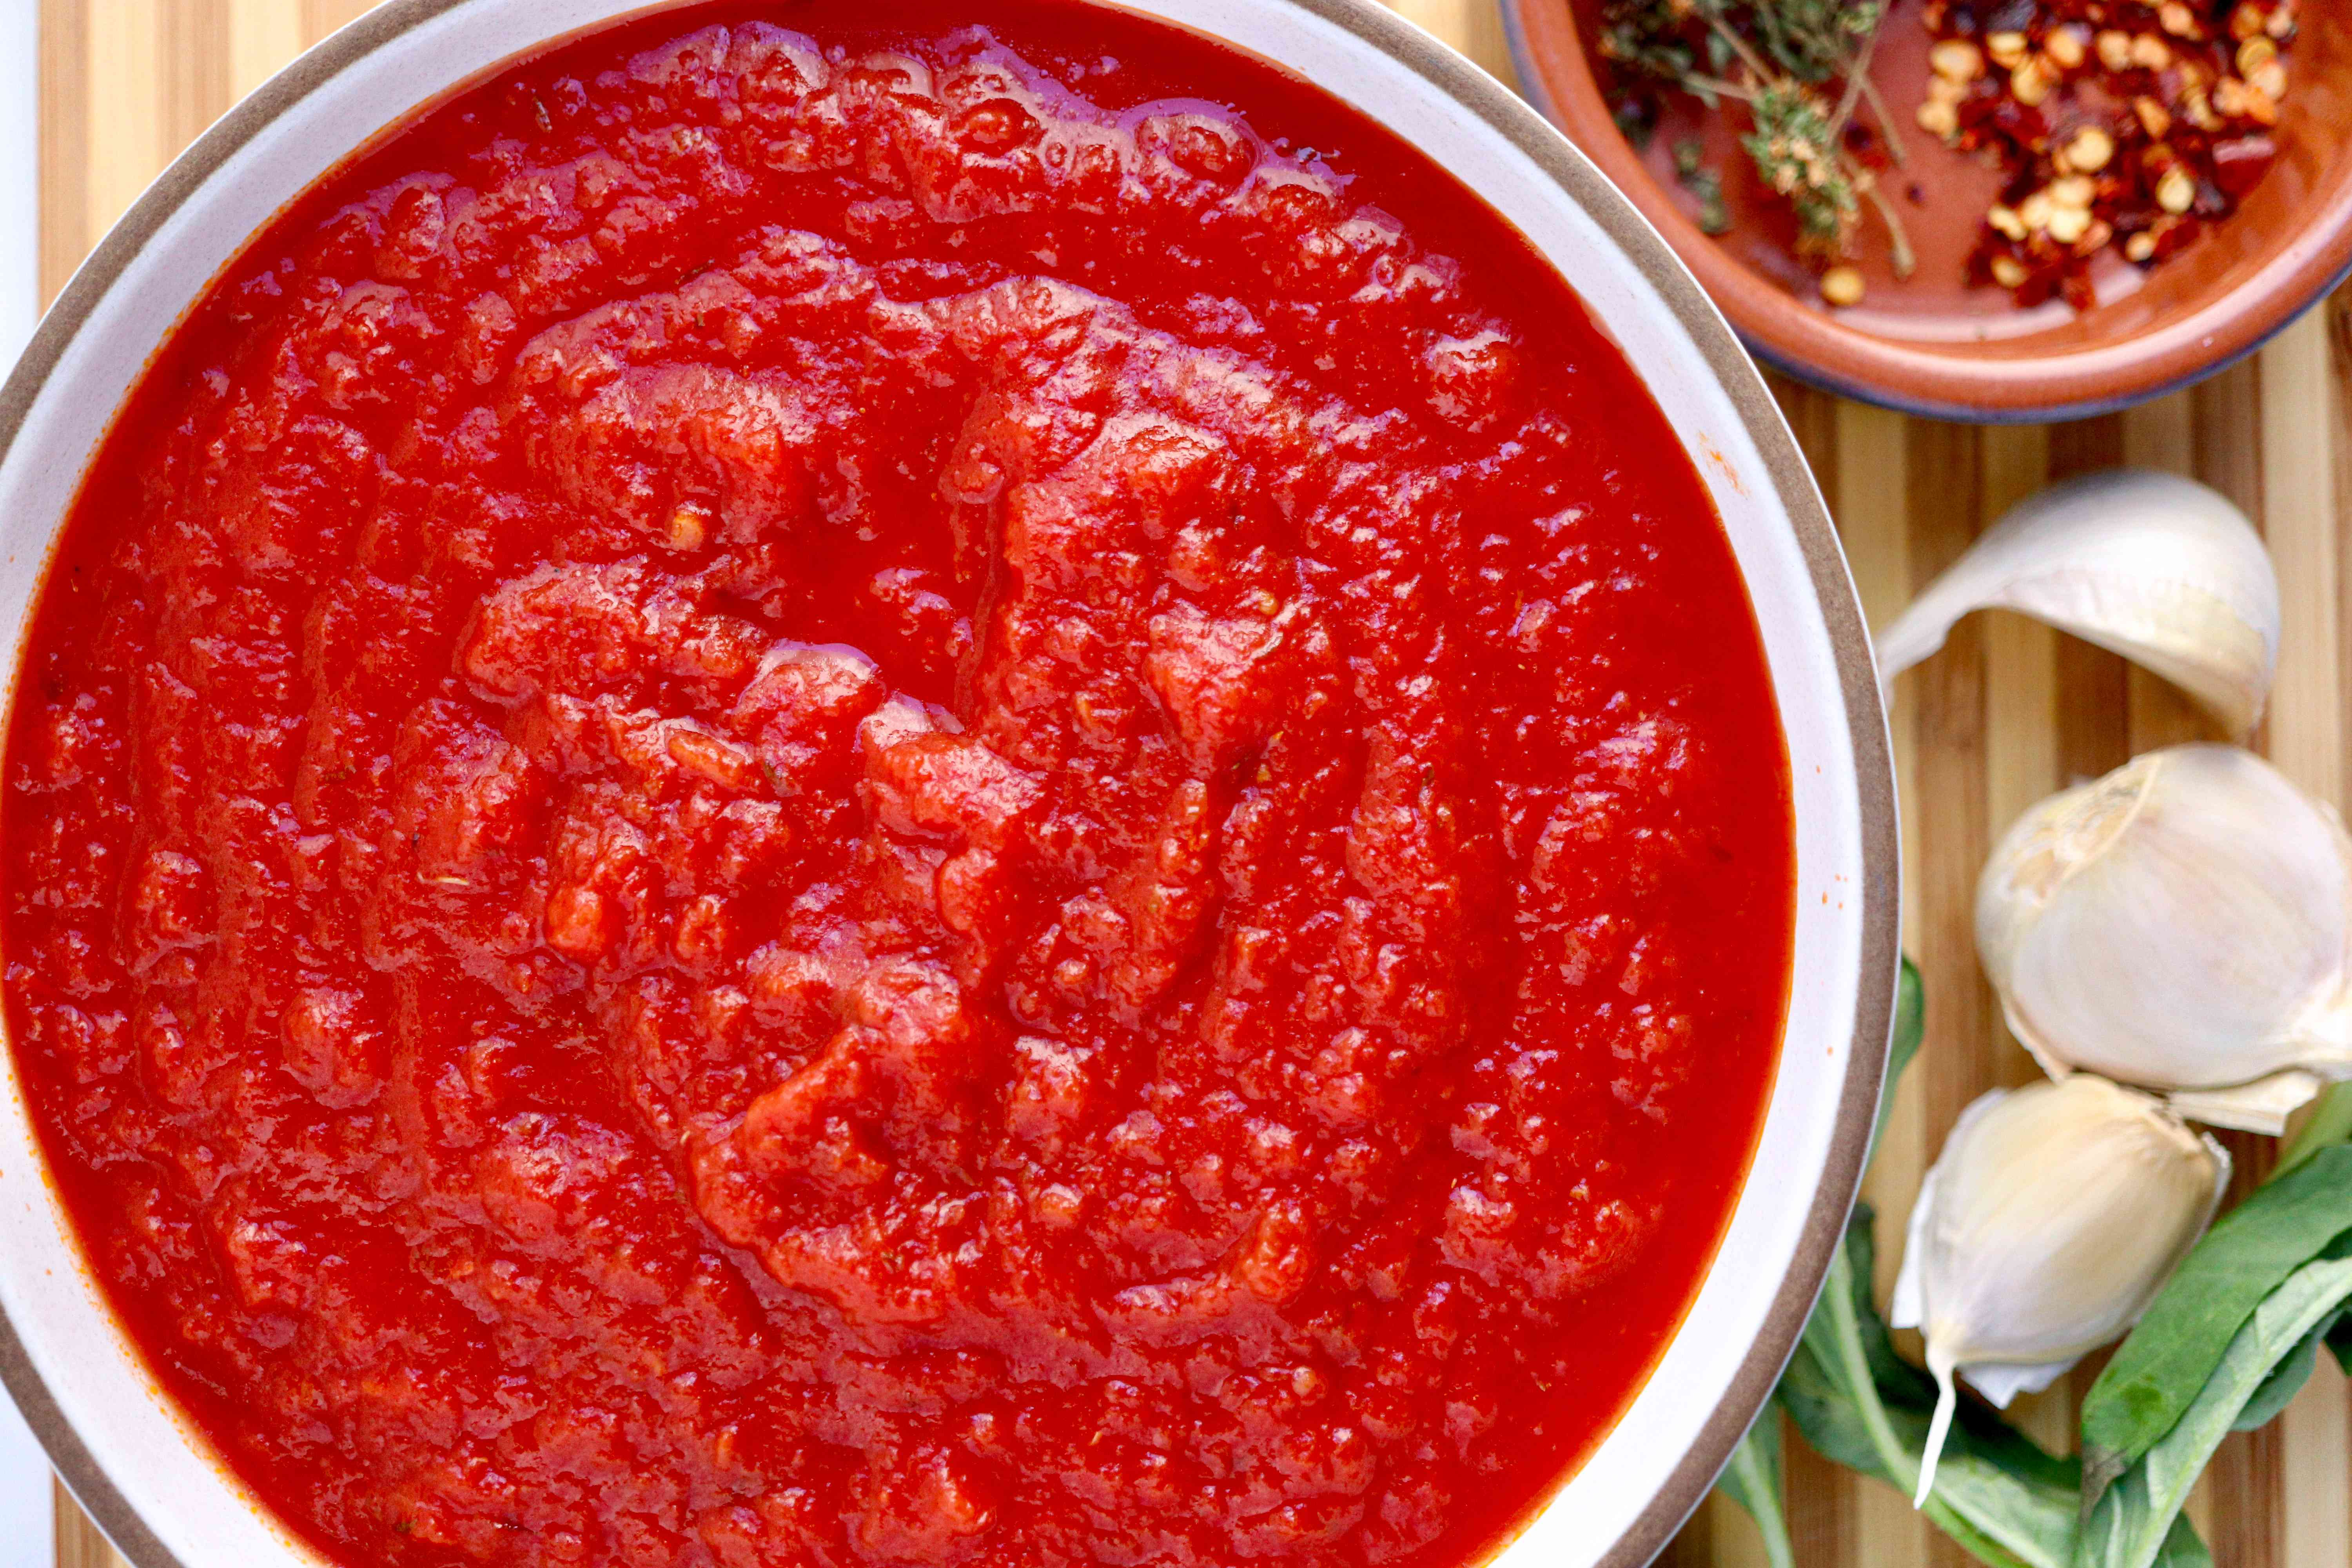 A bowl of Red Pizza Sauce.